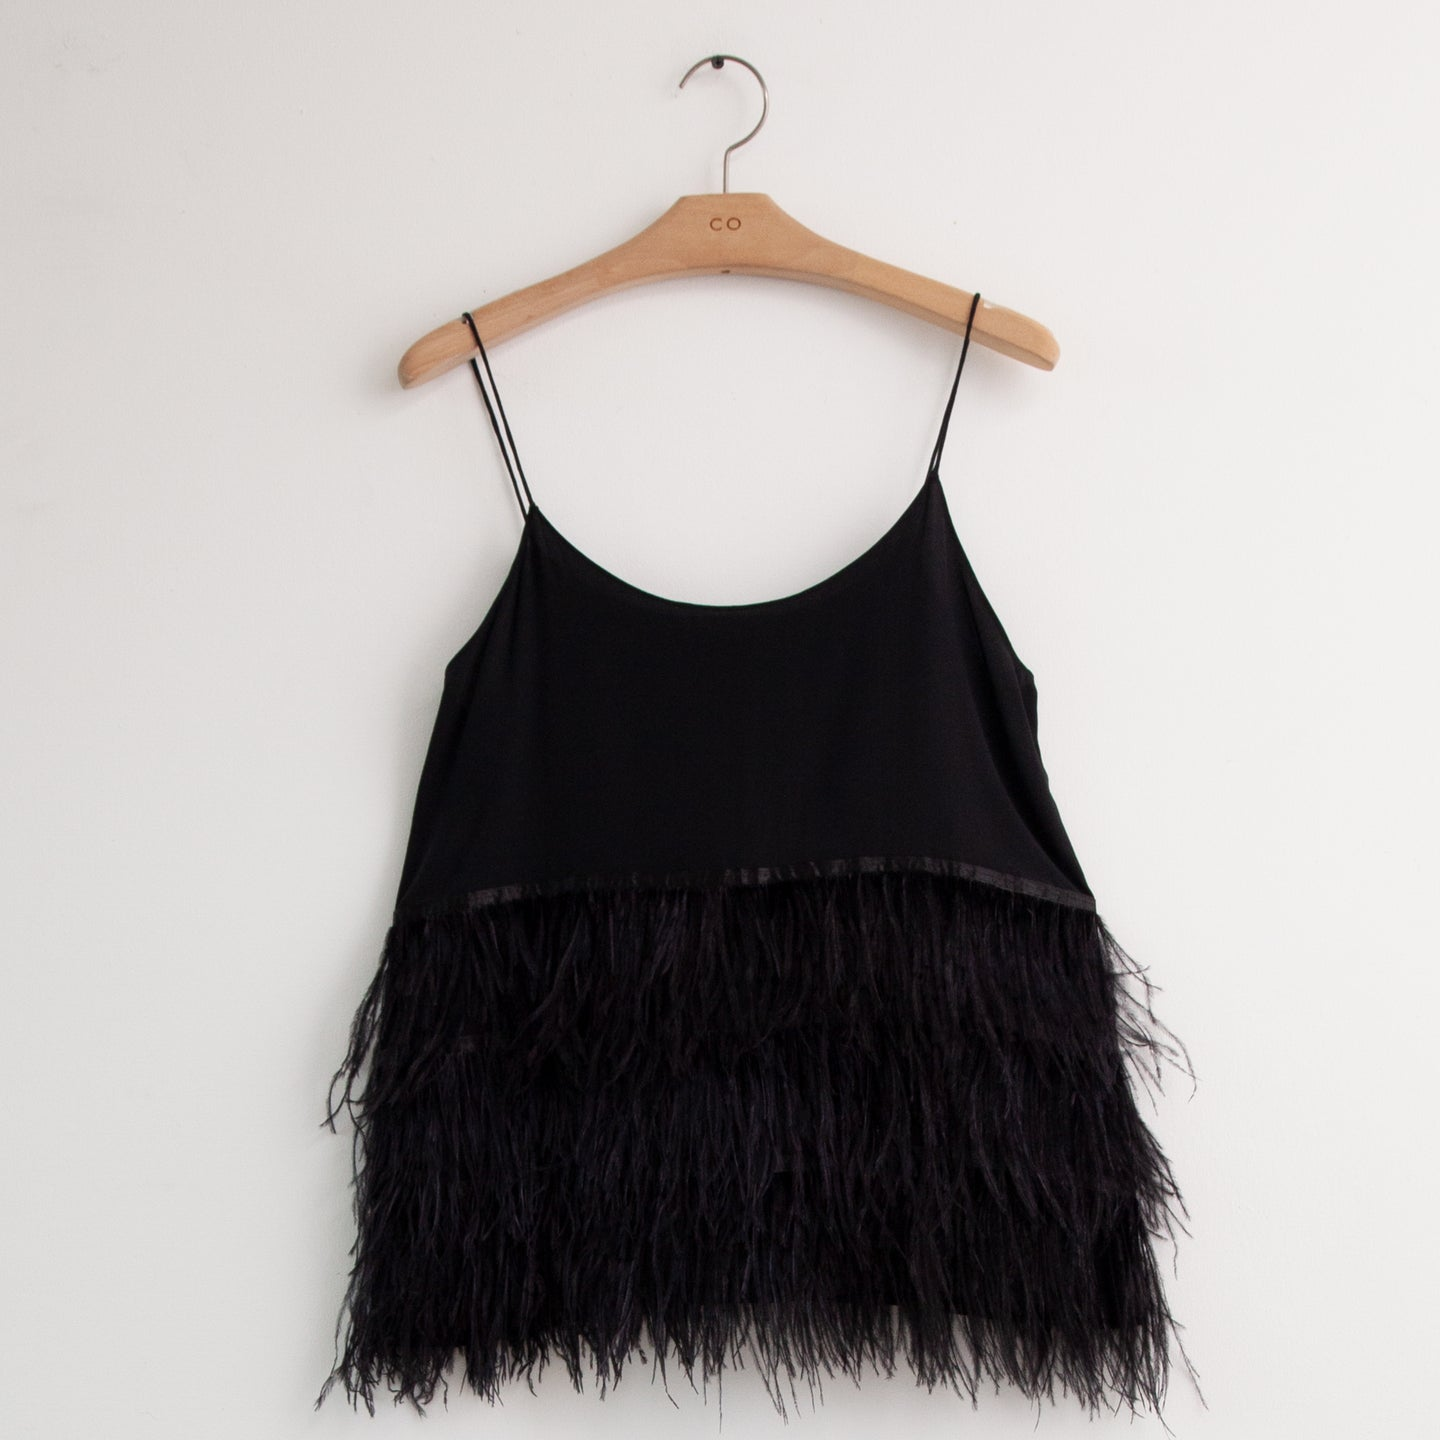 CO - Thin strap cami with tiered feather hem in black silk